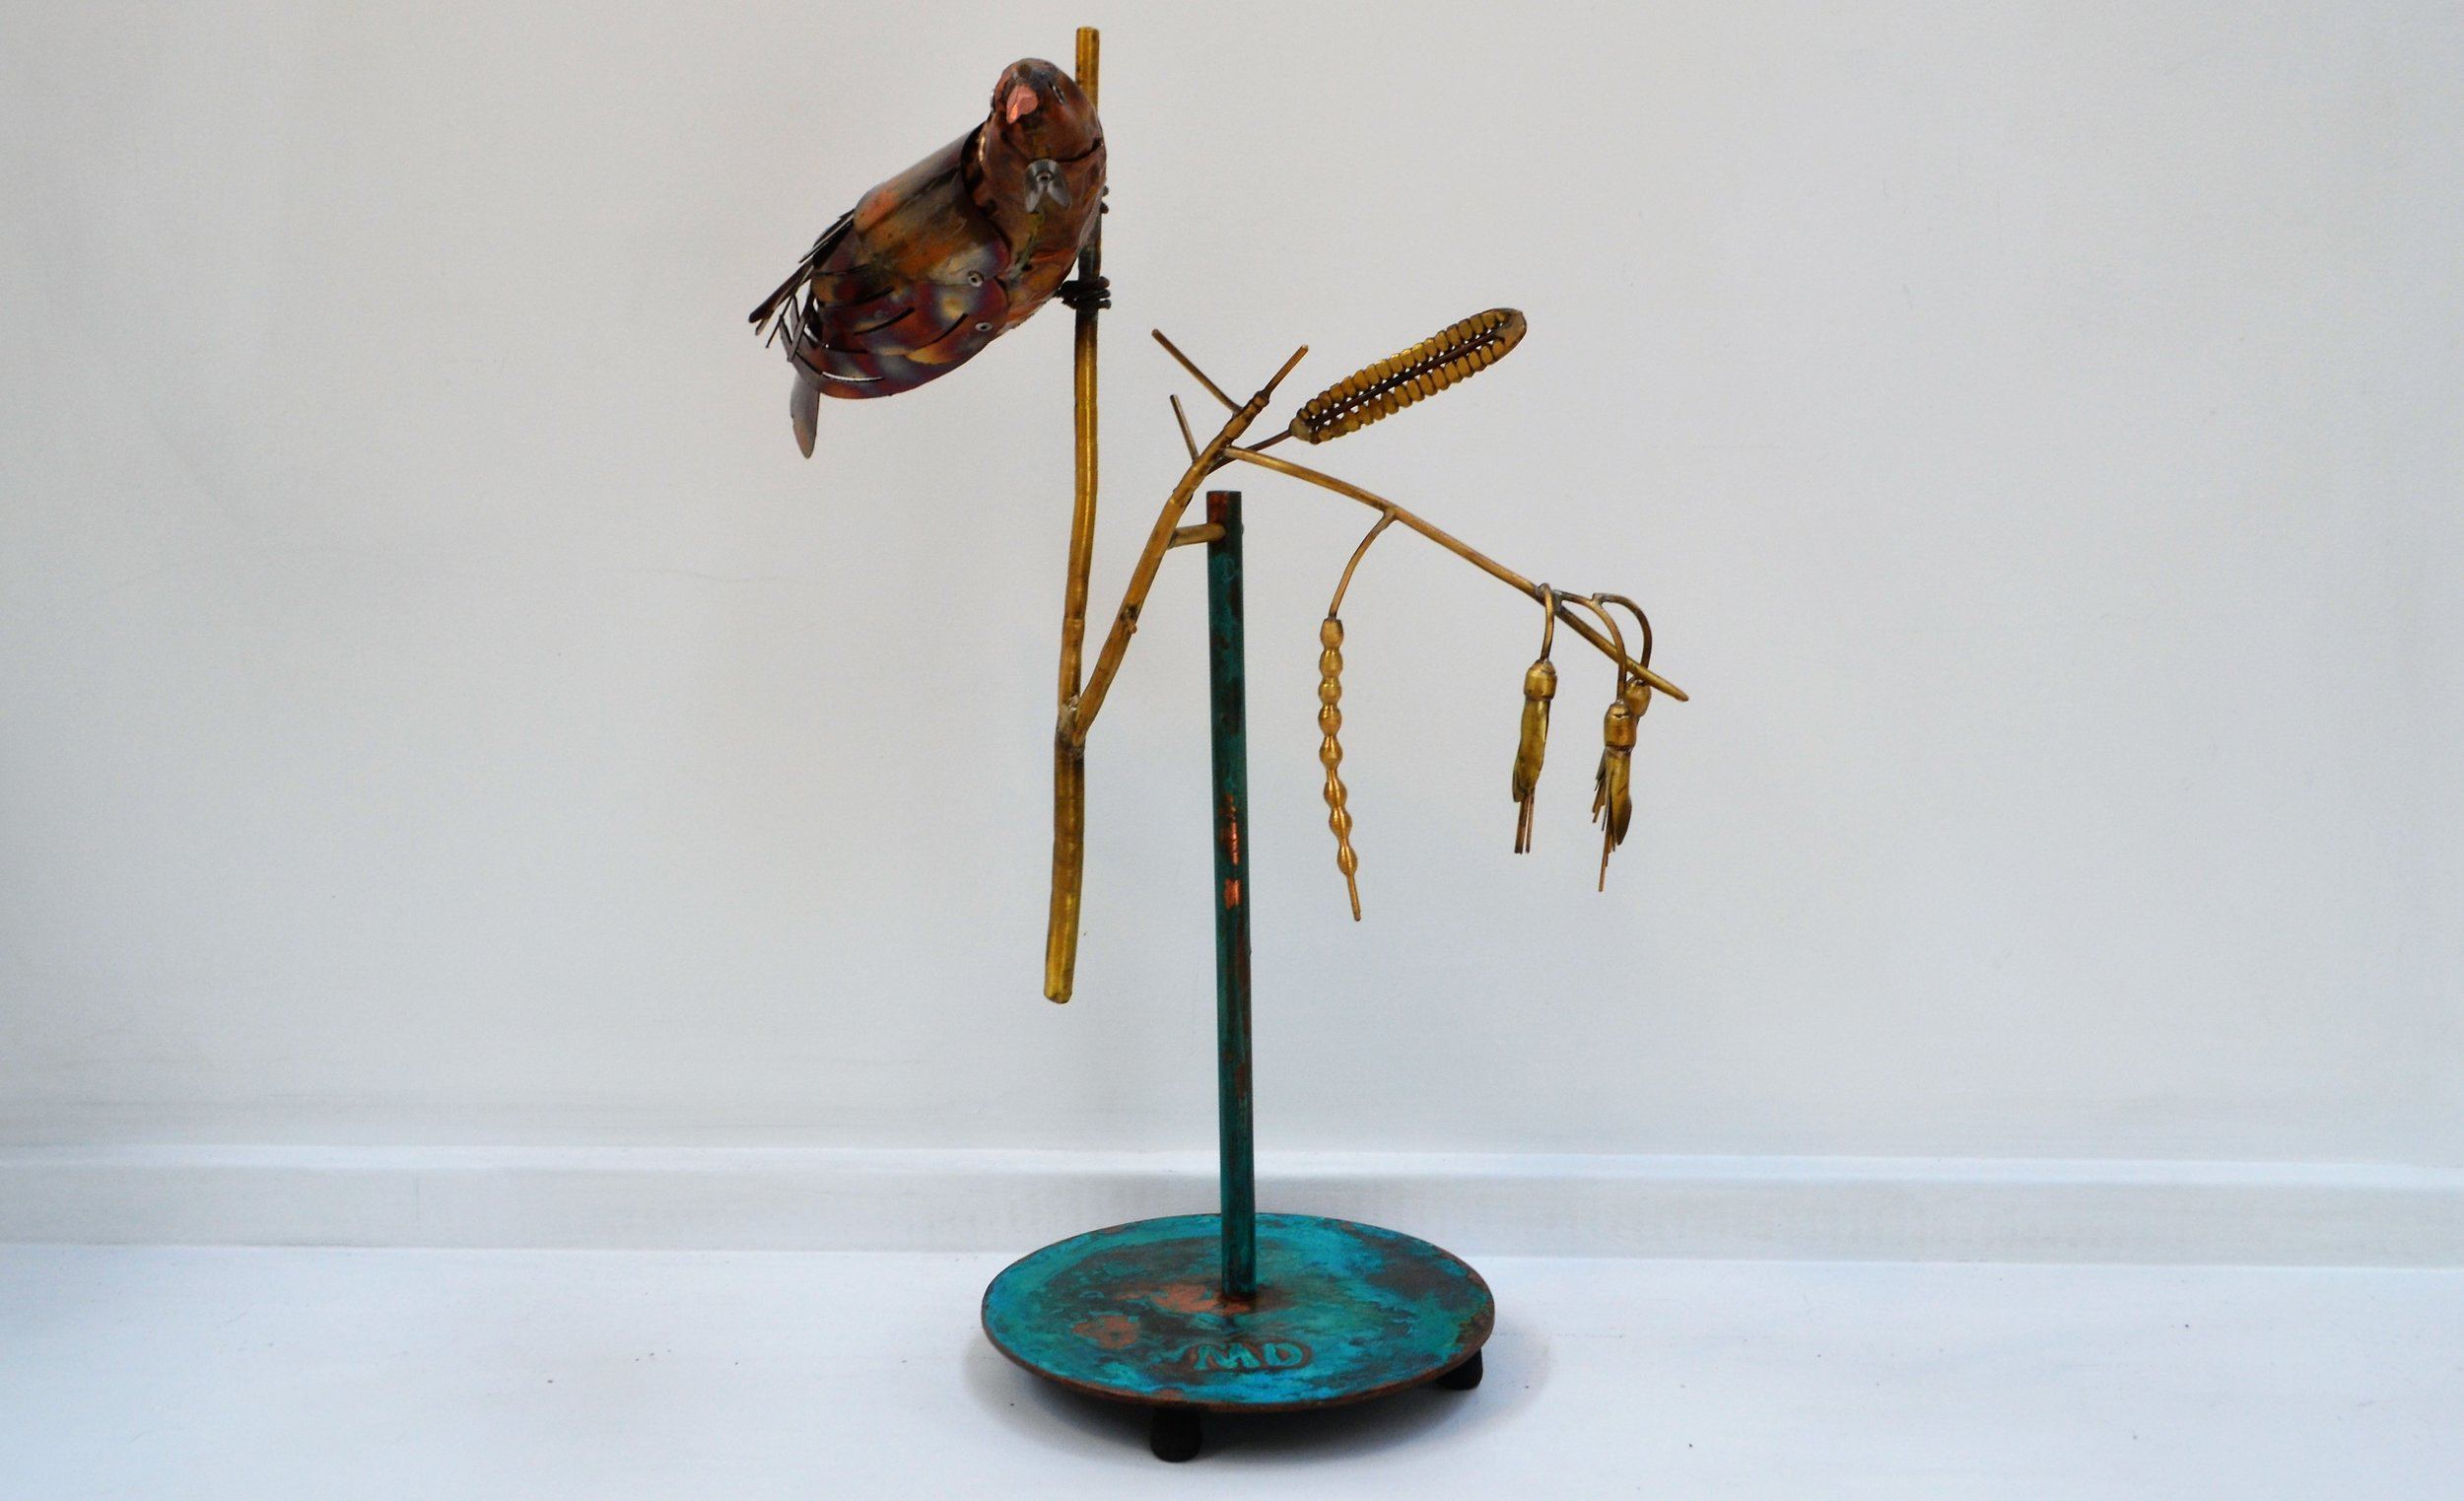 Brass Tui   Mark Dimock, brass indoor sculpture, 380mm x 570mm approx.  $2,250.00